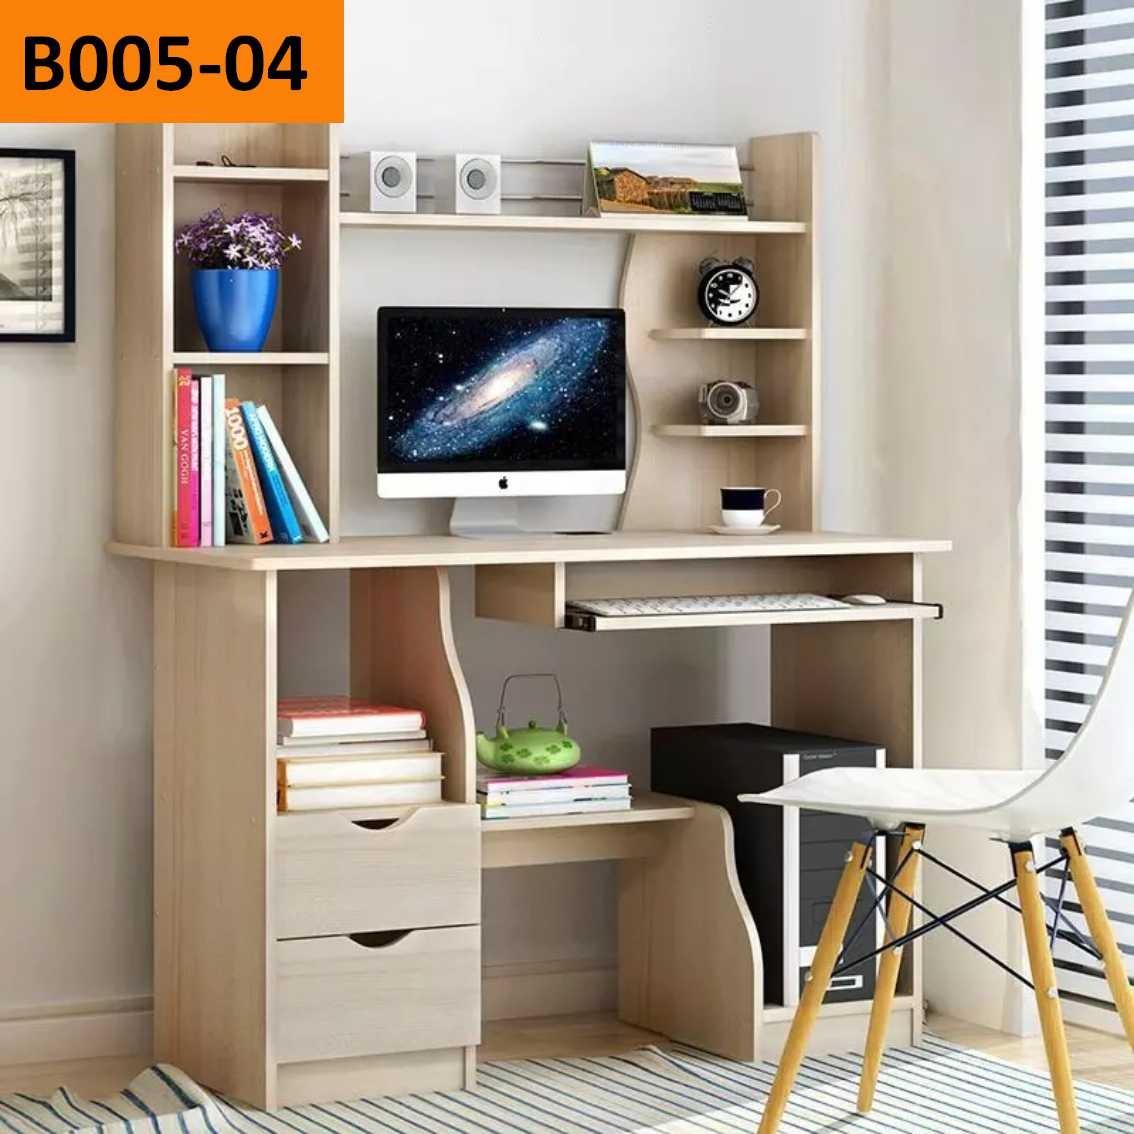 cfm rotating office homcom shelf and bookshelf with home corner combo computer desk hayneedle master product